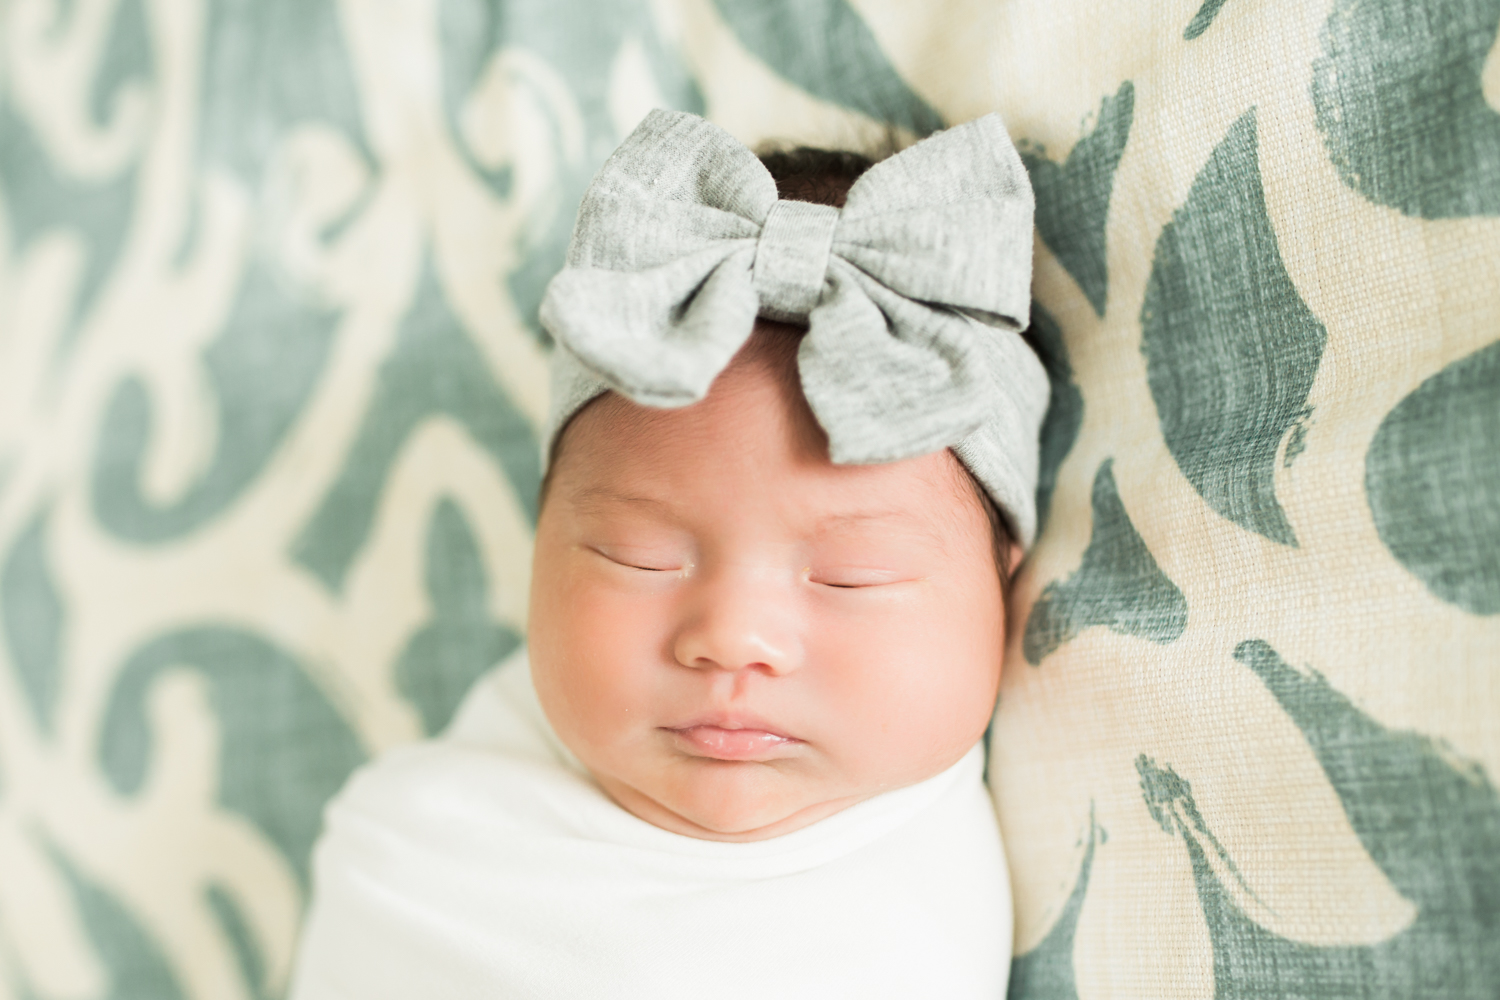 Collier County lifestyle newborn photographer